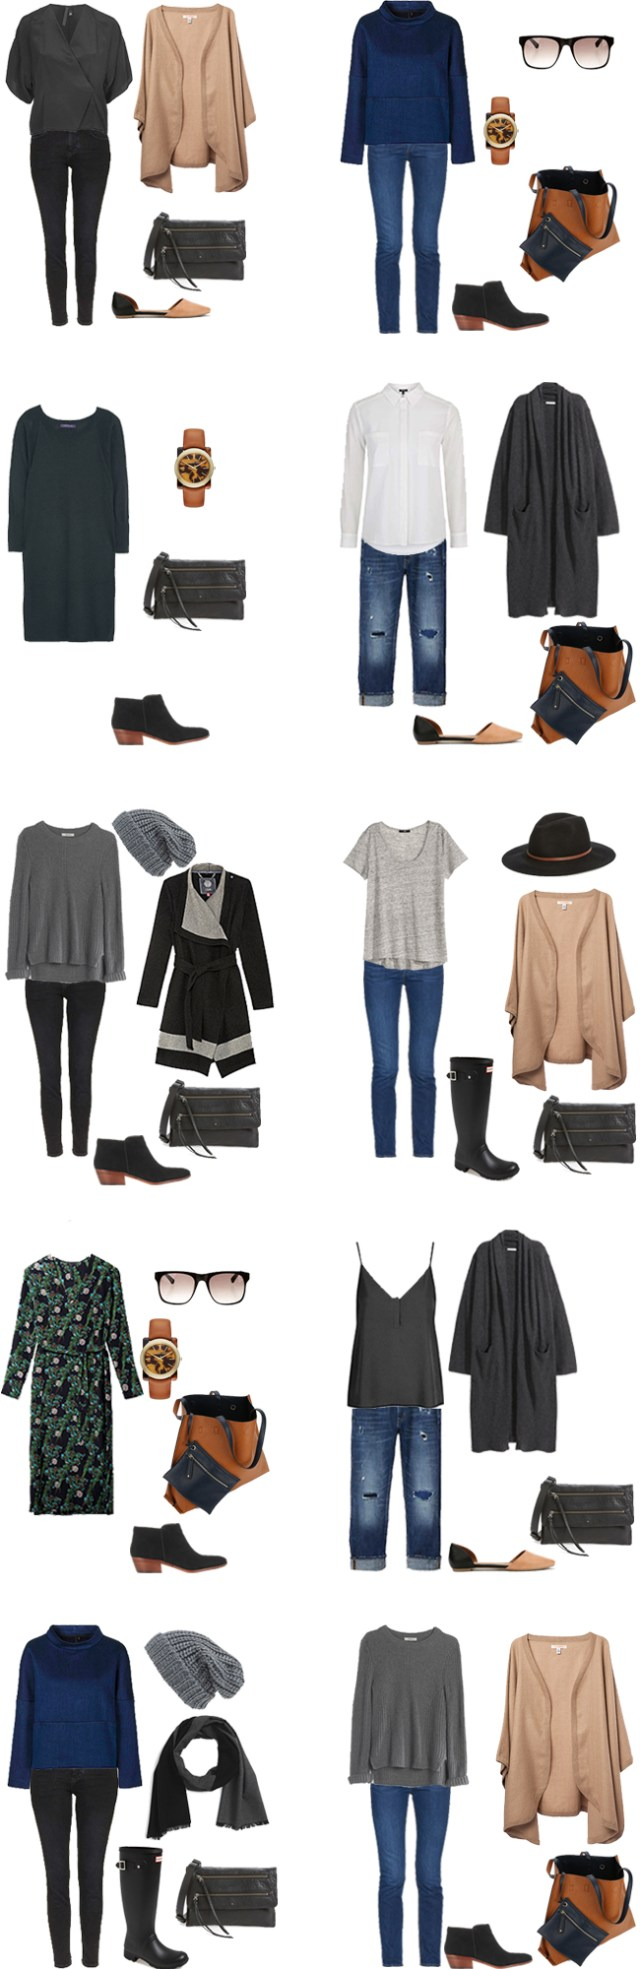 What to Wear in Italy and Switzerland Outfits 11-20 #travellight #packinglight #traveltips #travel